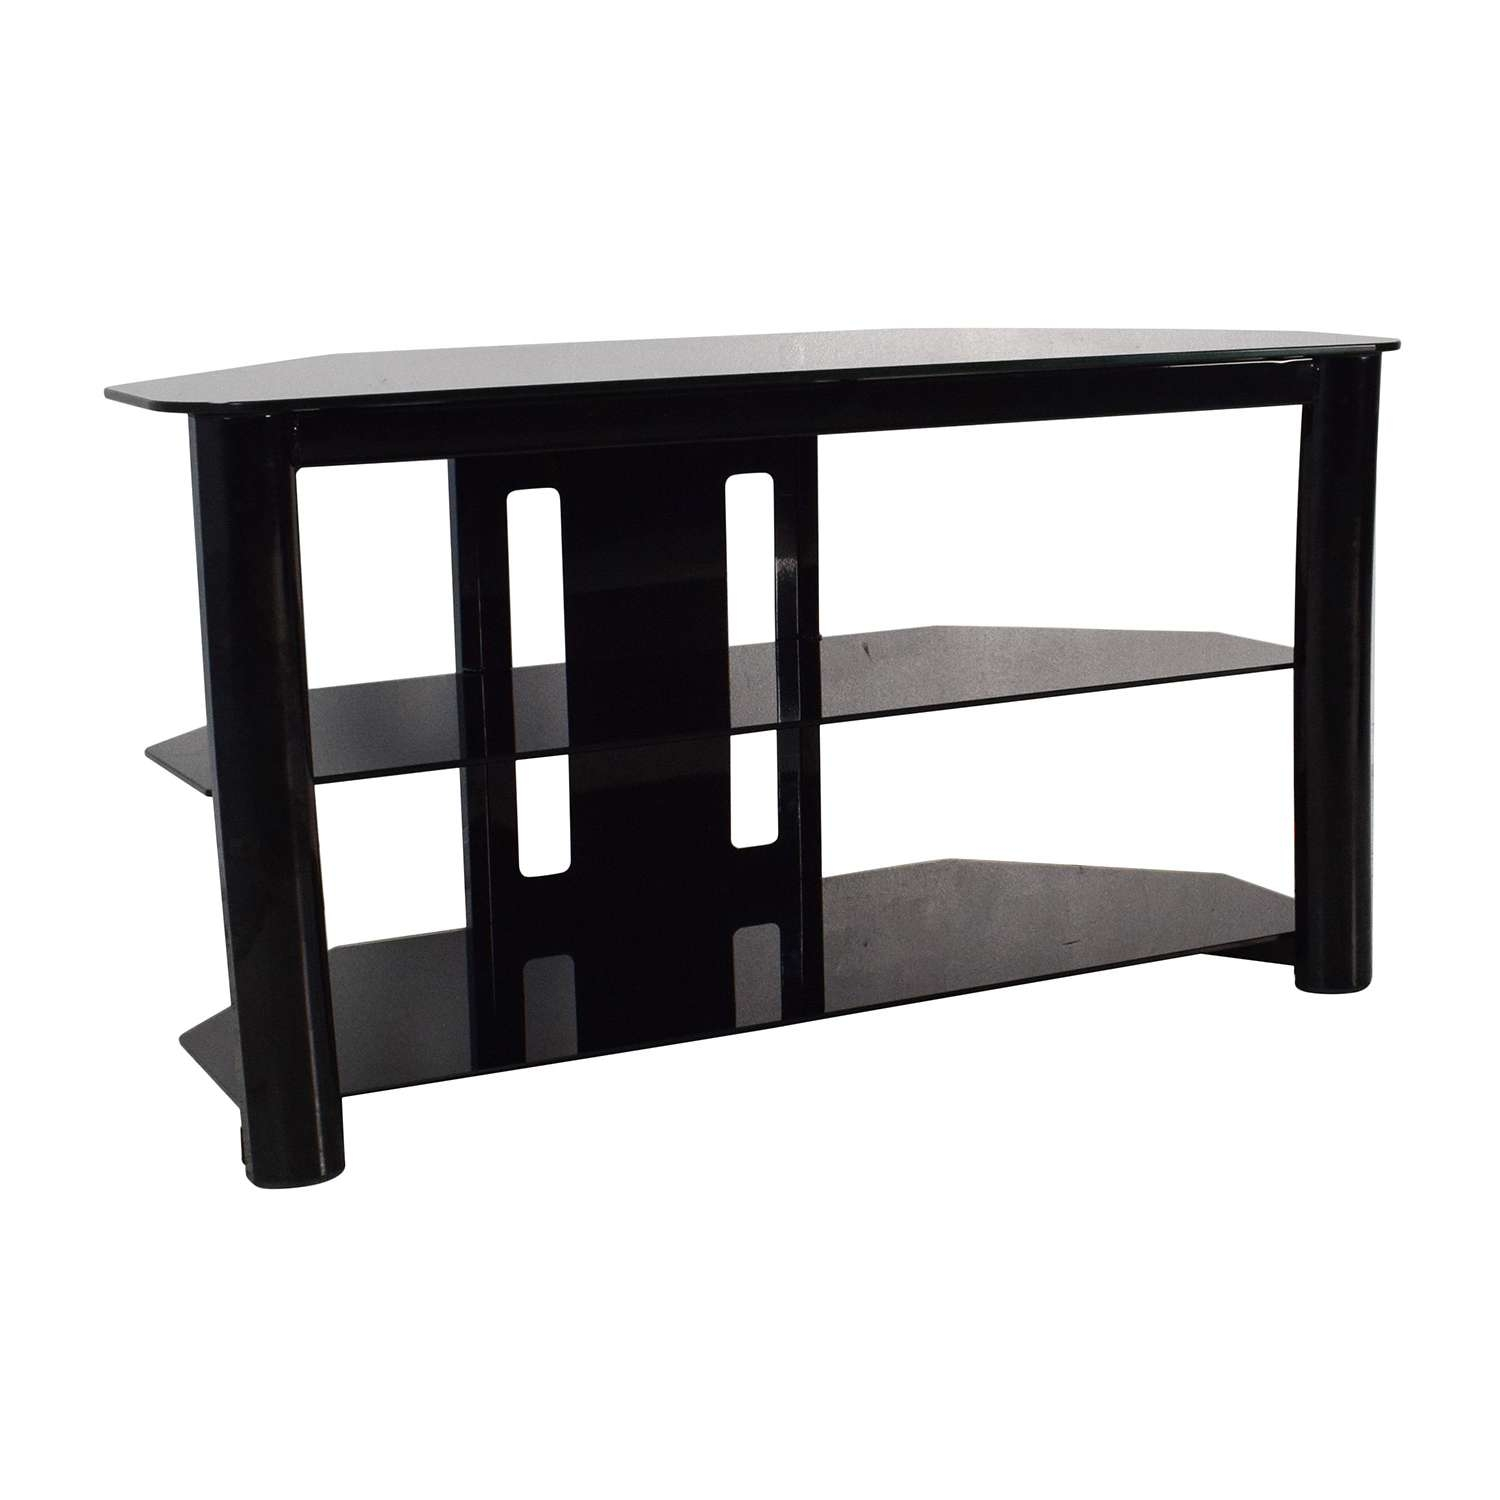 61% Off – Best Buy Best Buy Black Glass Tv Stand / Storage With Regard To Black Glass Tv Cabinets (View 18 of 20)